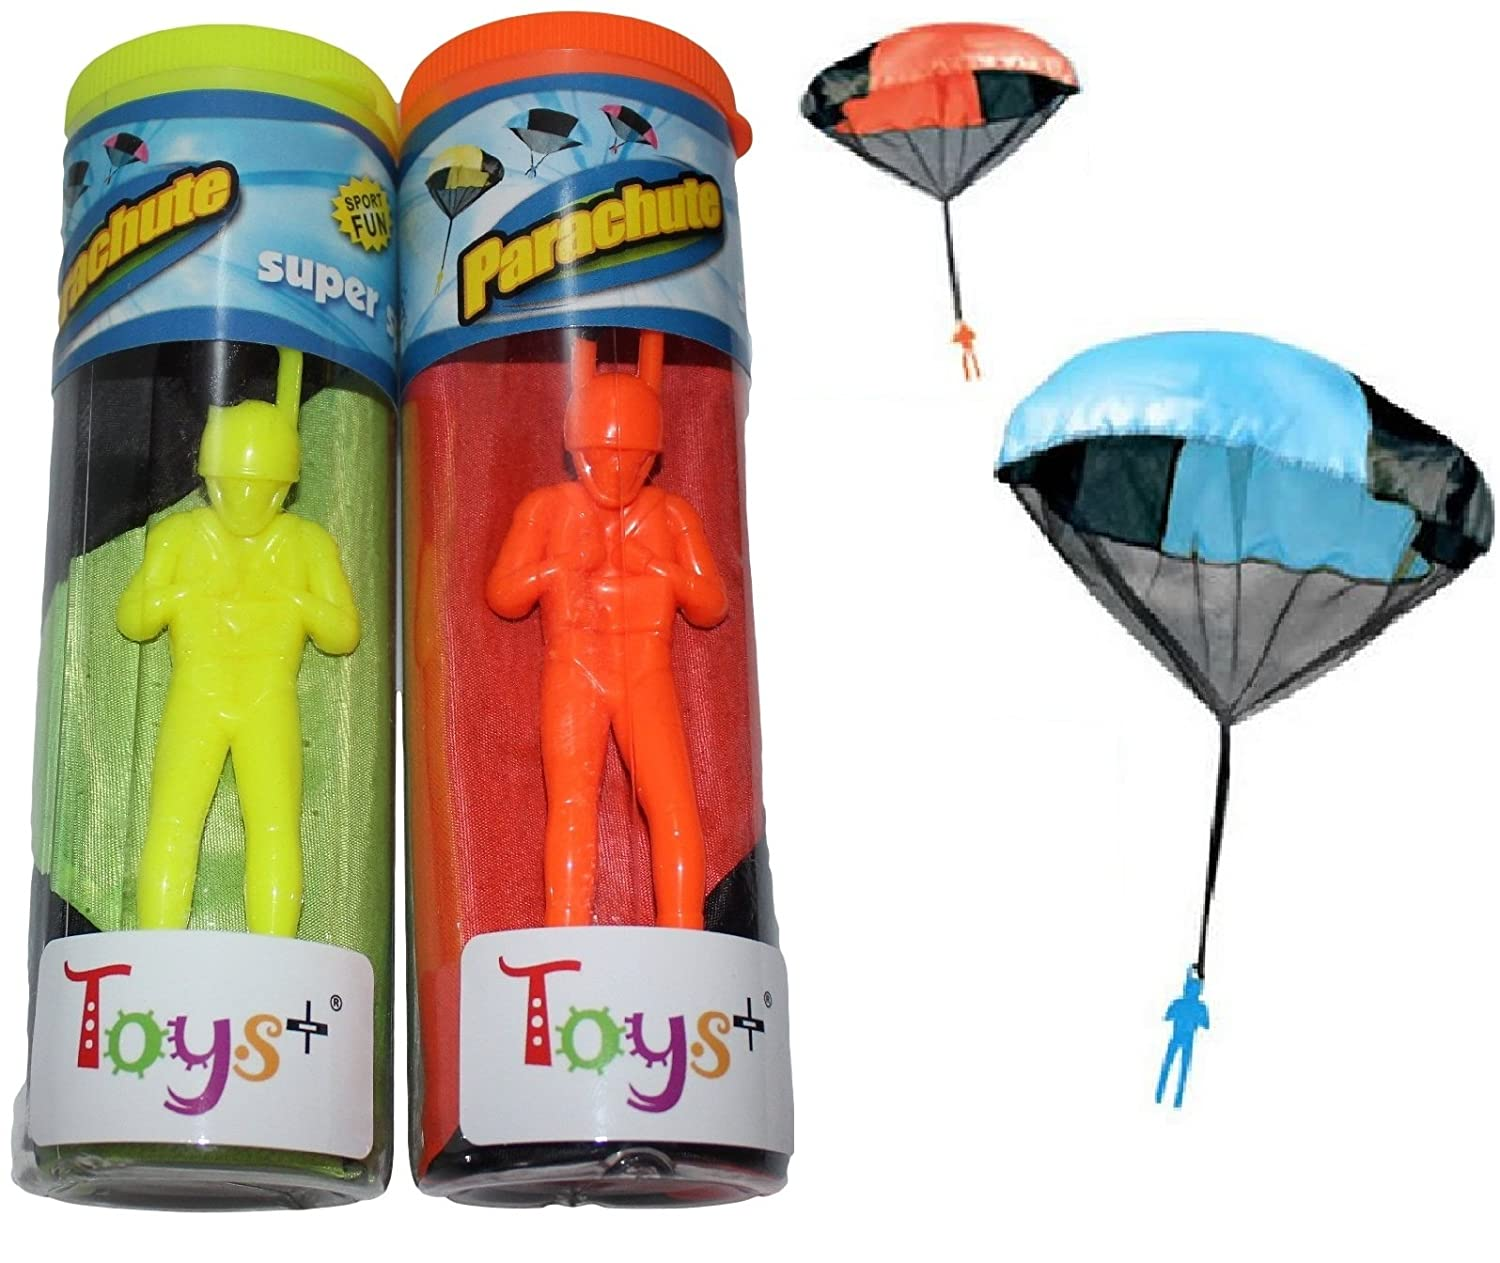 Toys 2 Pack Tangle Free Throwing Parachute Men with Large 20 Parachutes Blue Orange Pink and Yellow for Kids and Children Parachute Man